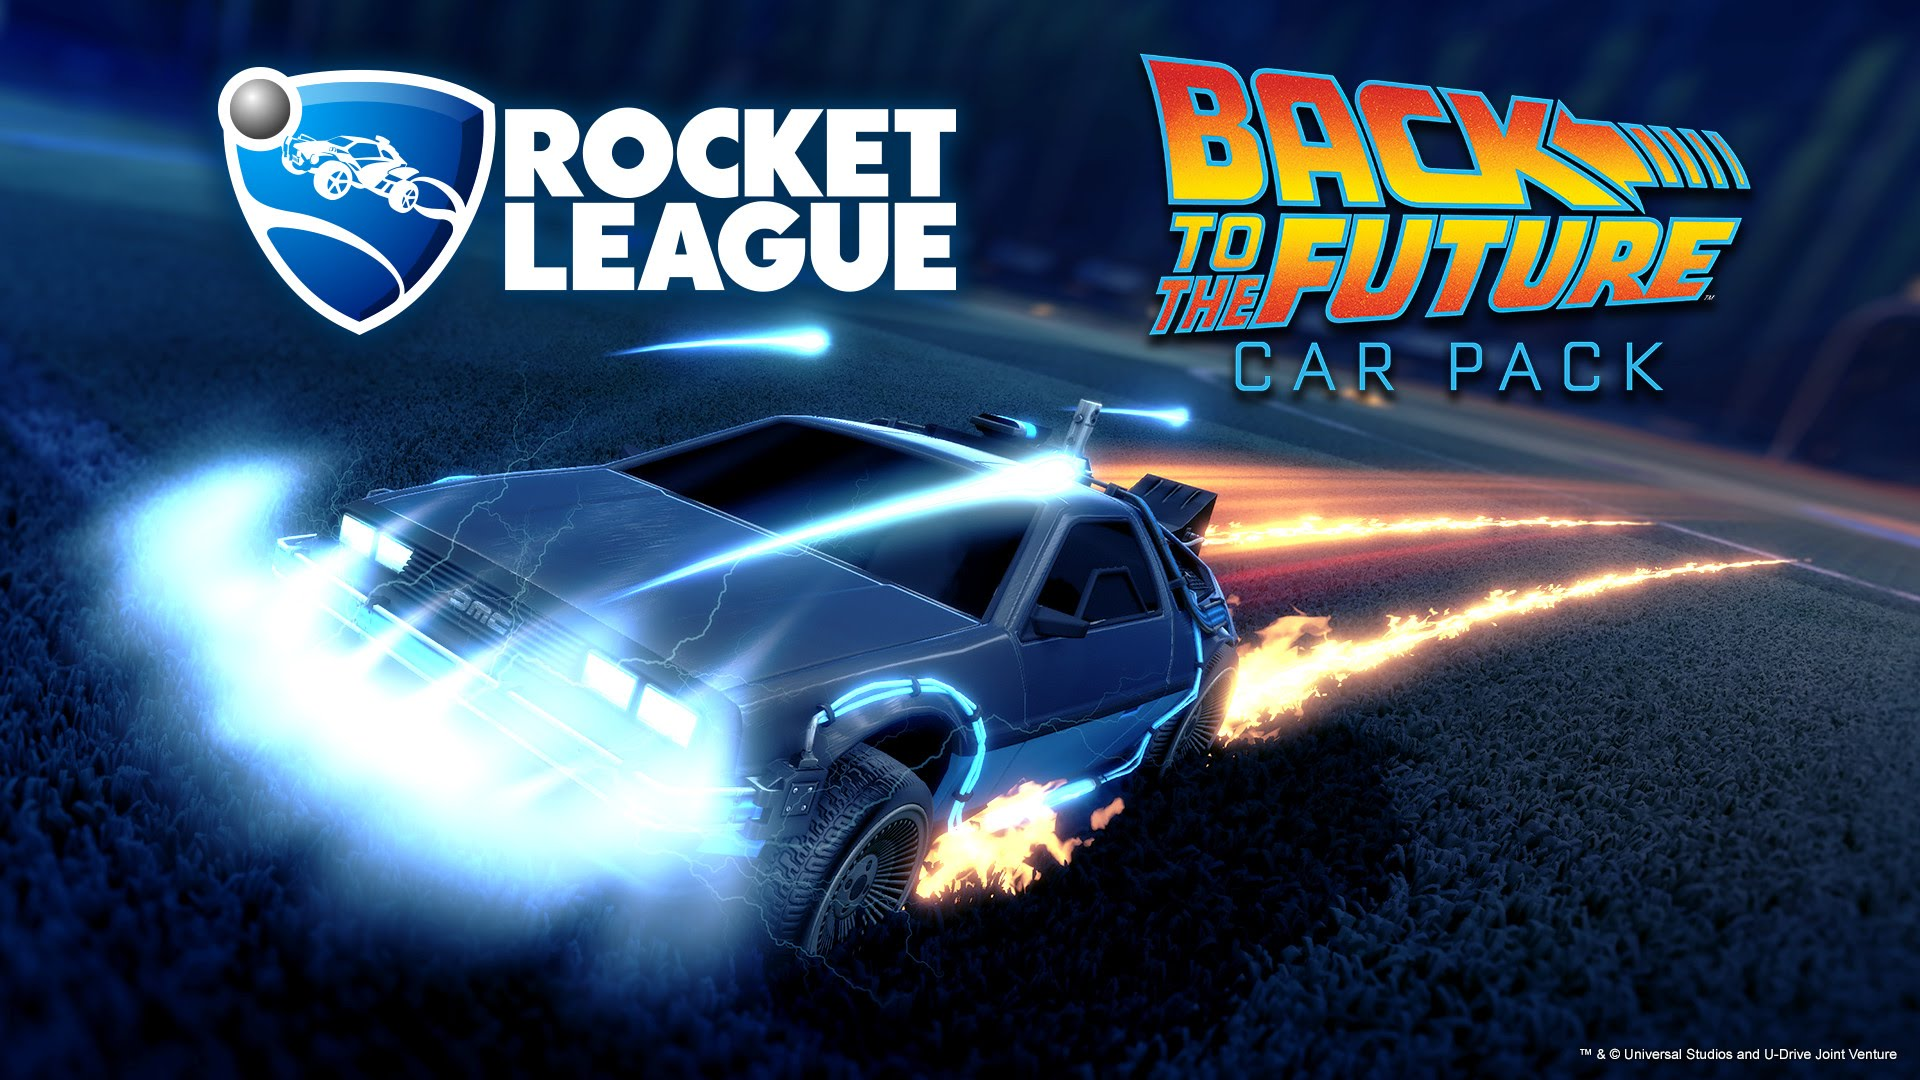 Back To The Future Pack DLC coming to Rocket League